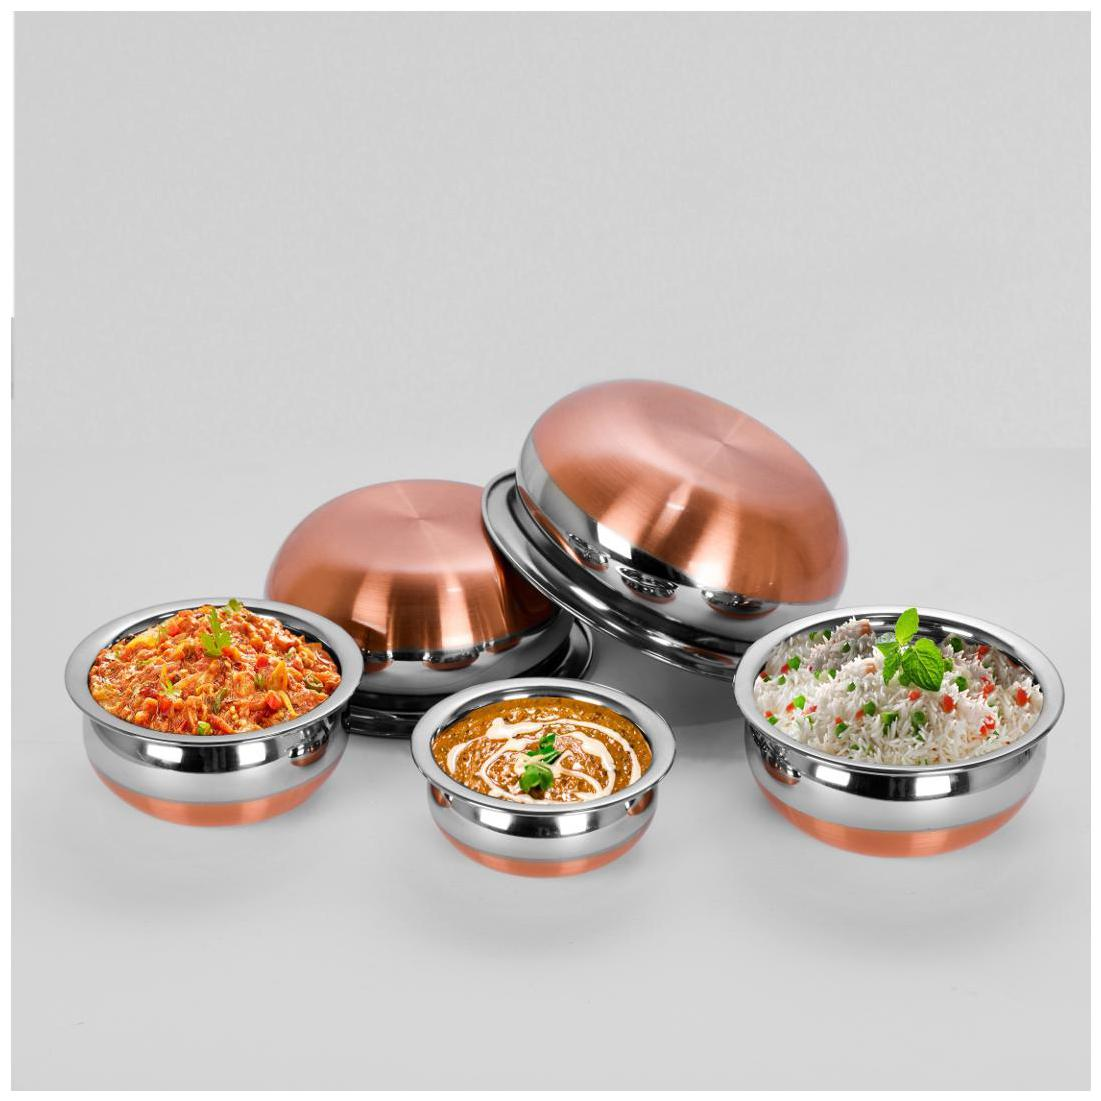 Sumeet 5Pc Set of Stainless Steel Copper Bottom Prabhu Chetty / Cookware...